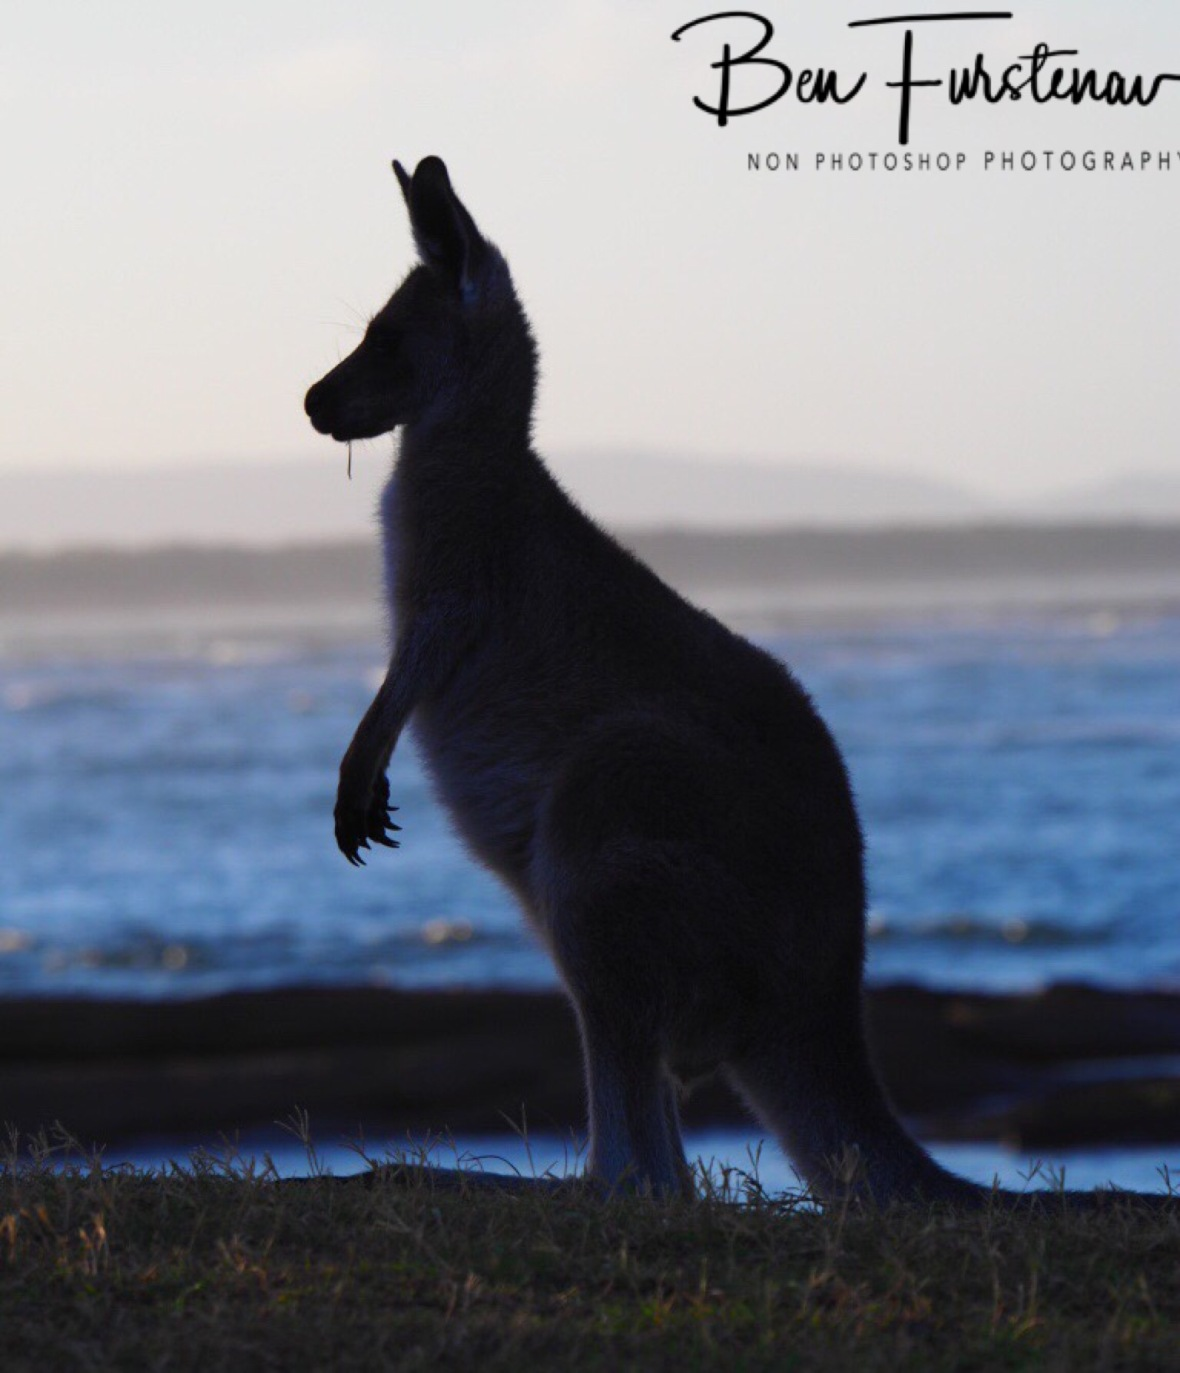 Kangaroo sunset pose at Woody Head, New South Wales, Australia